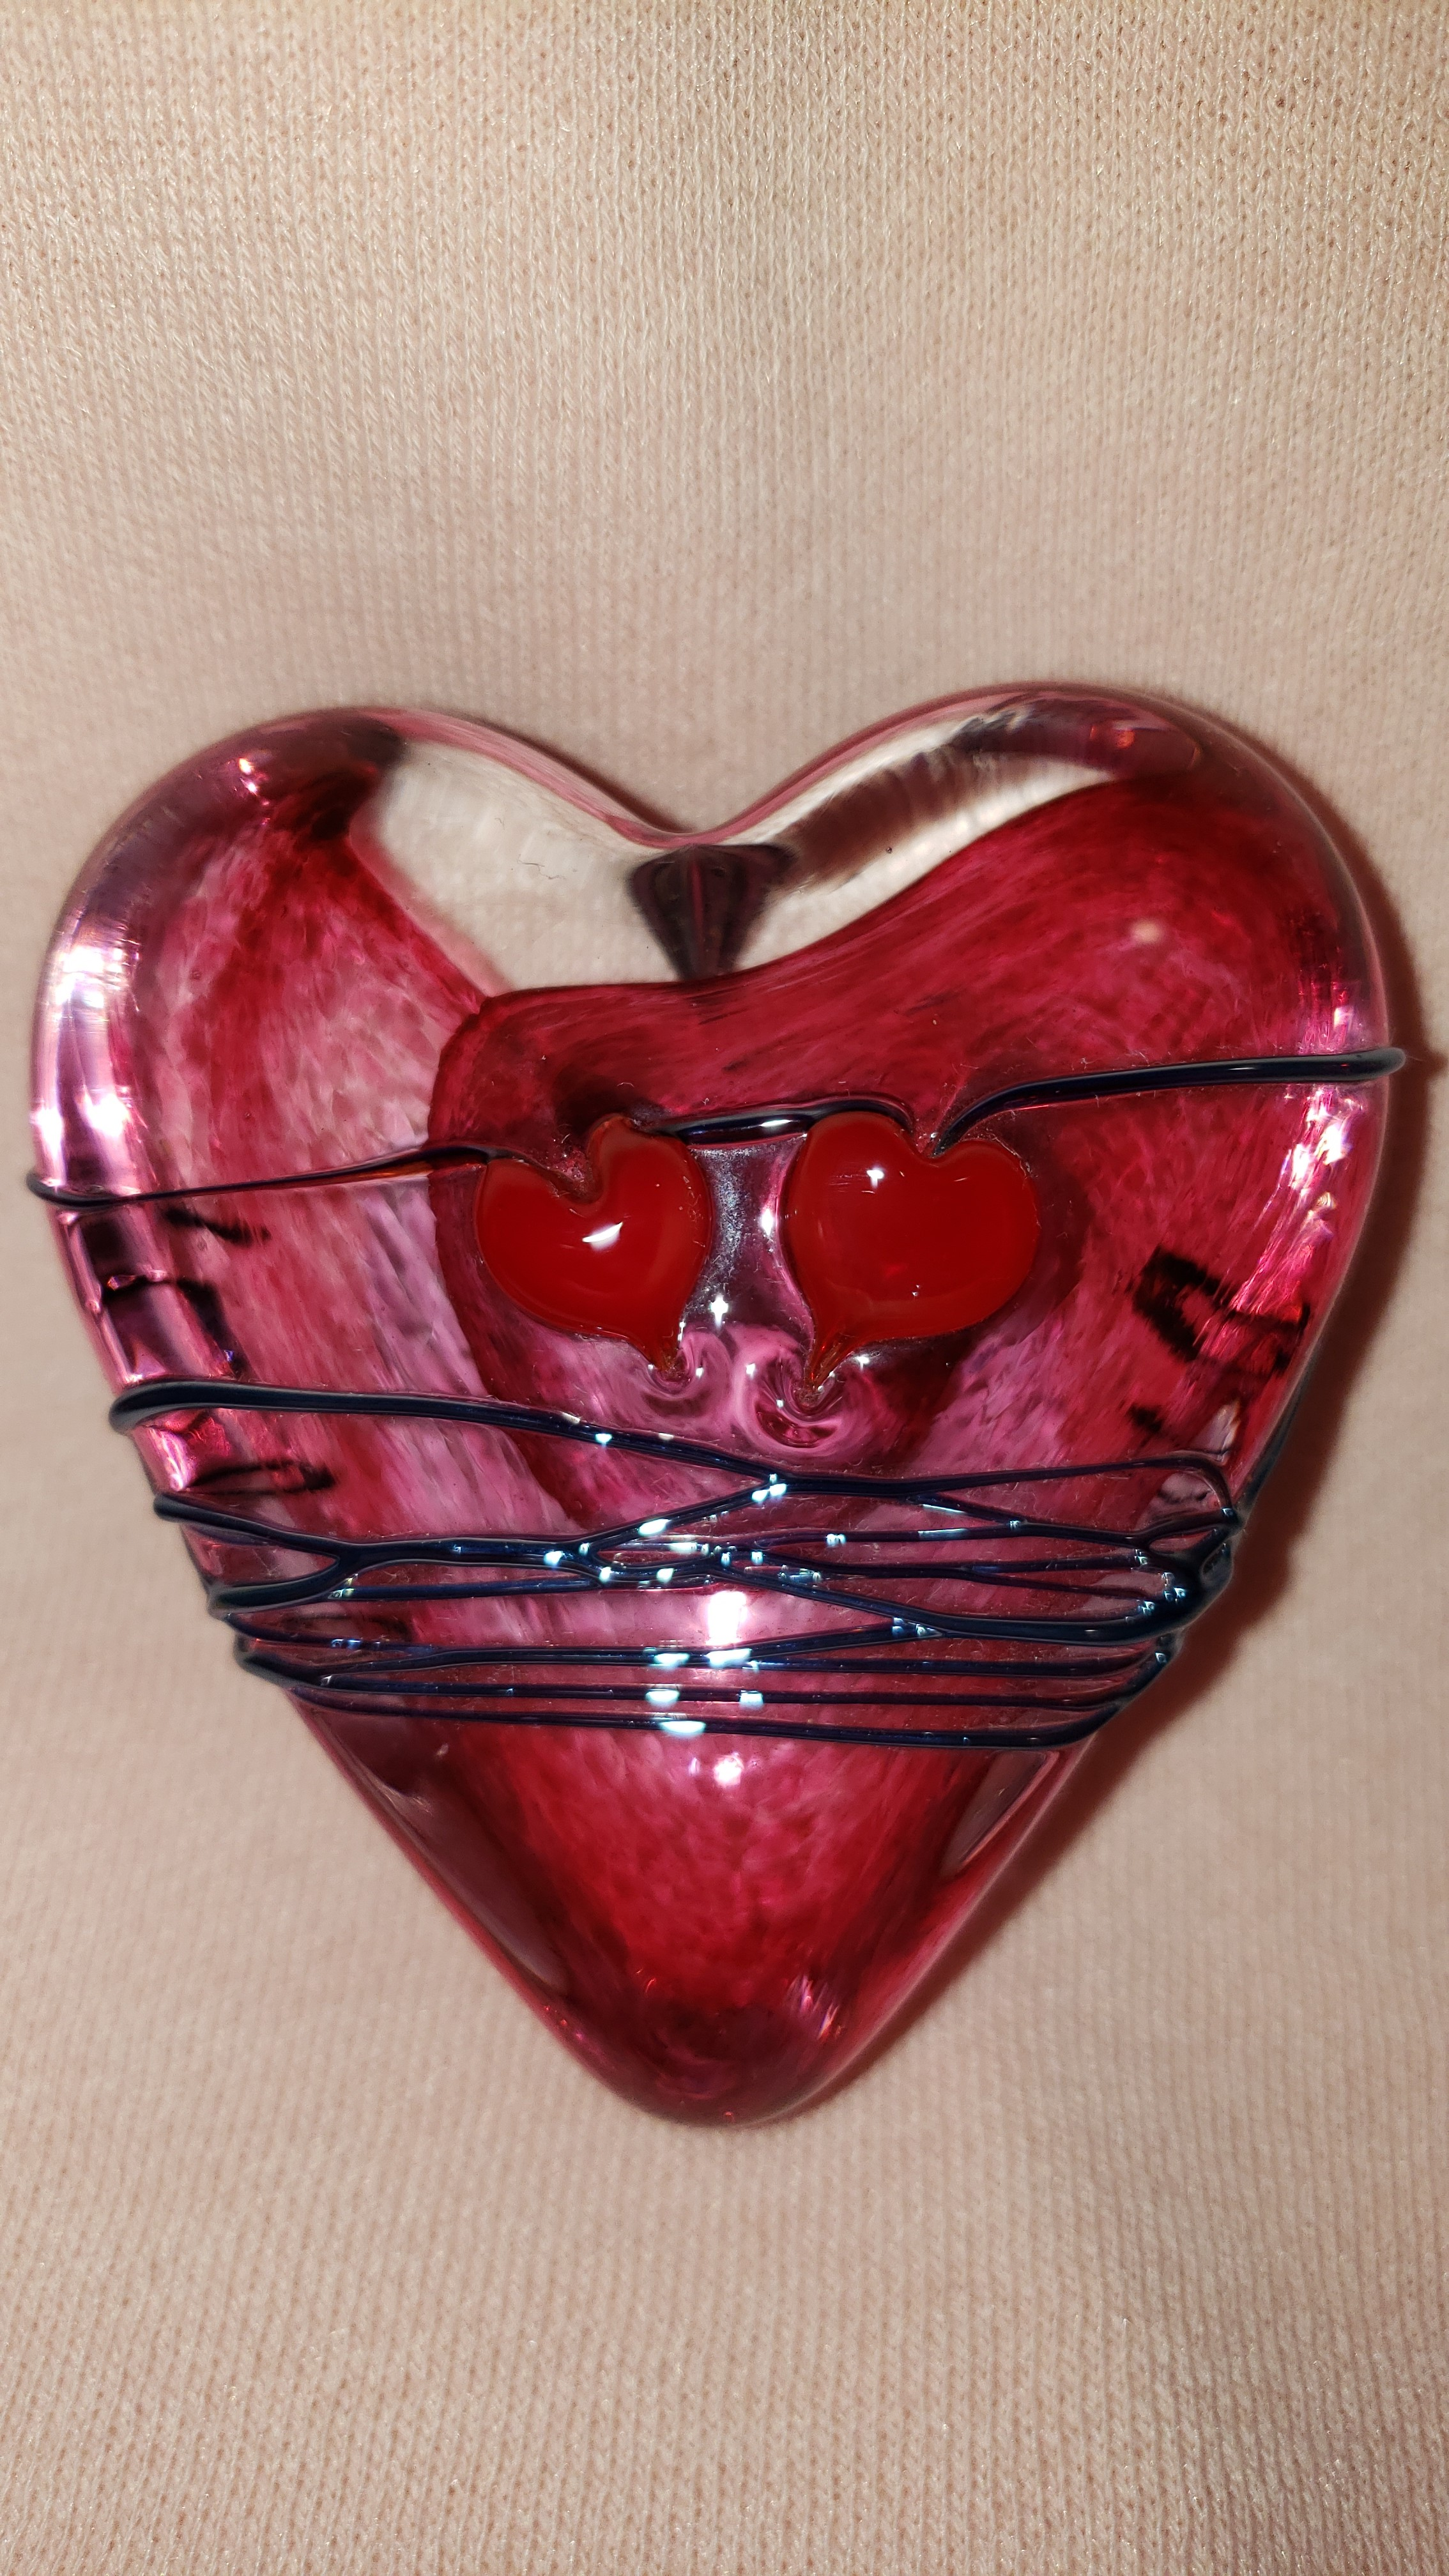 Pink Glass Heart Paperweight w/ Silver Drizzle& hearts - by David Salazar As Seen In...